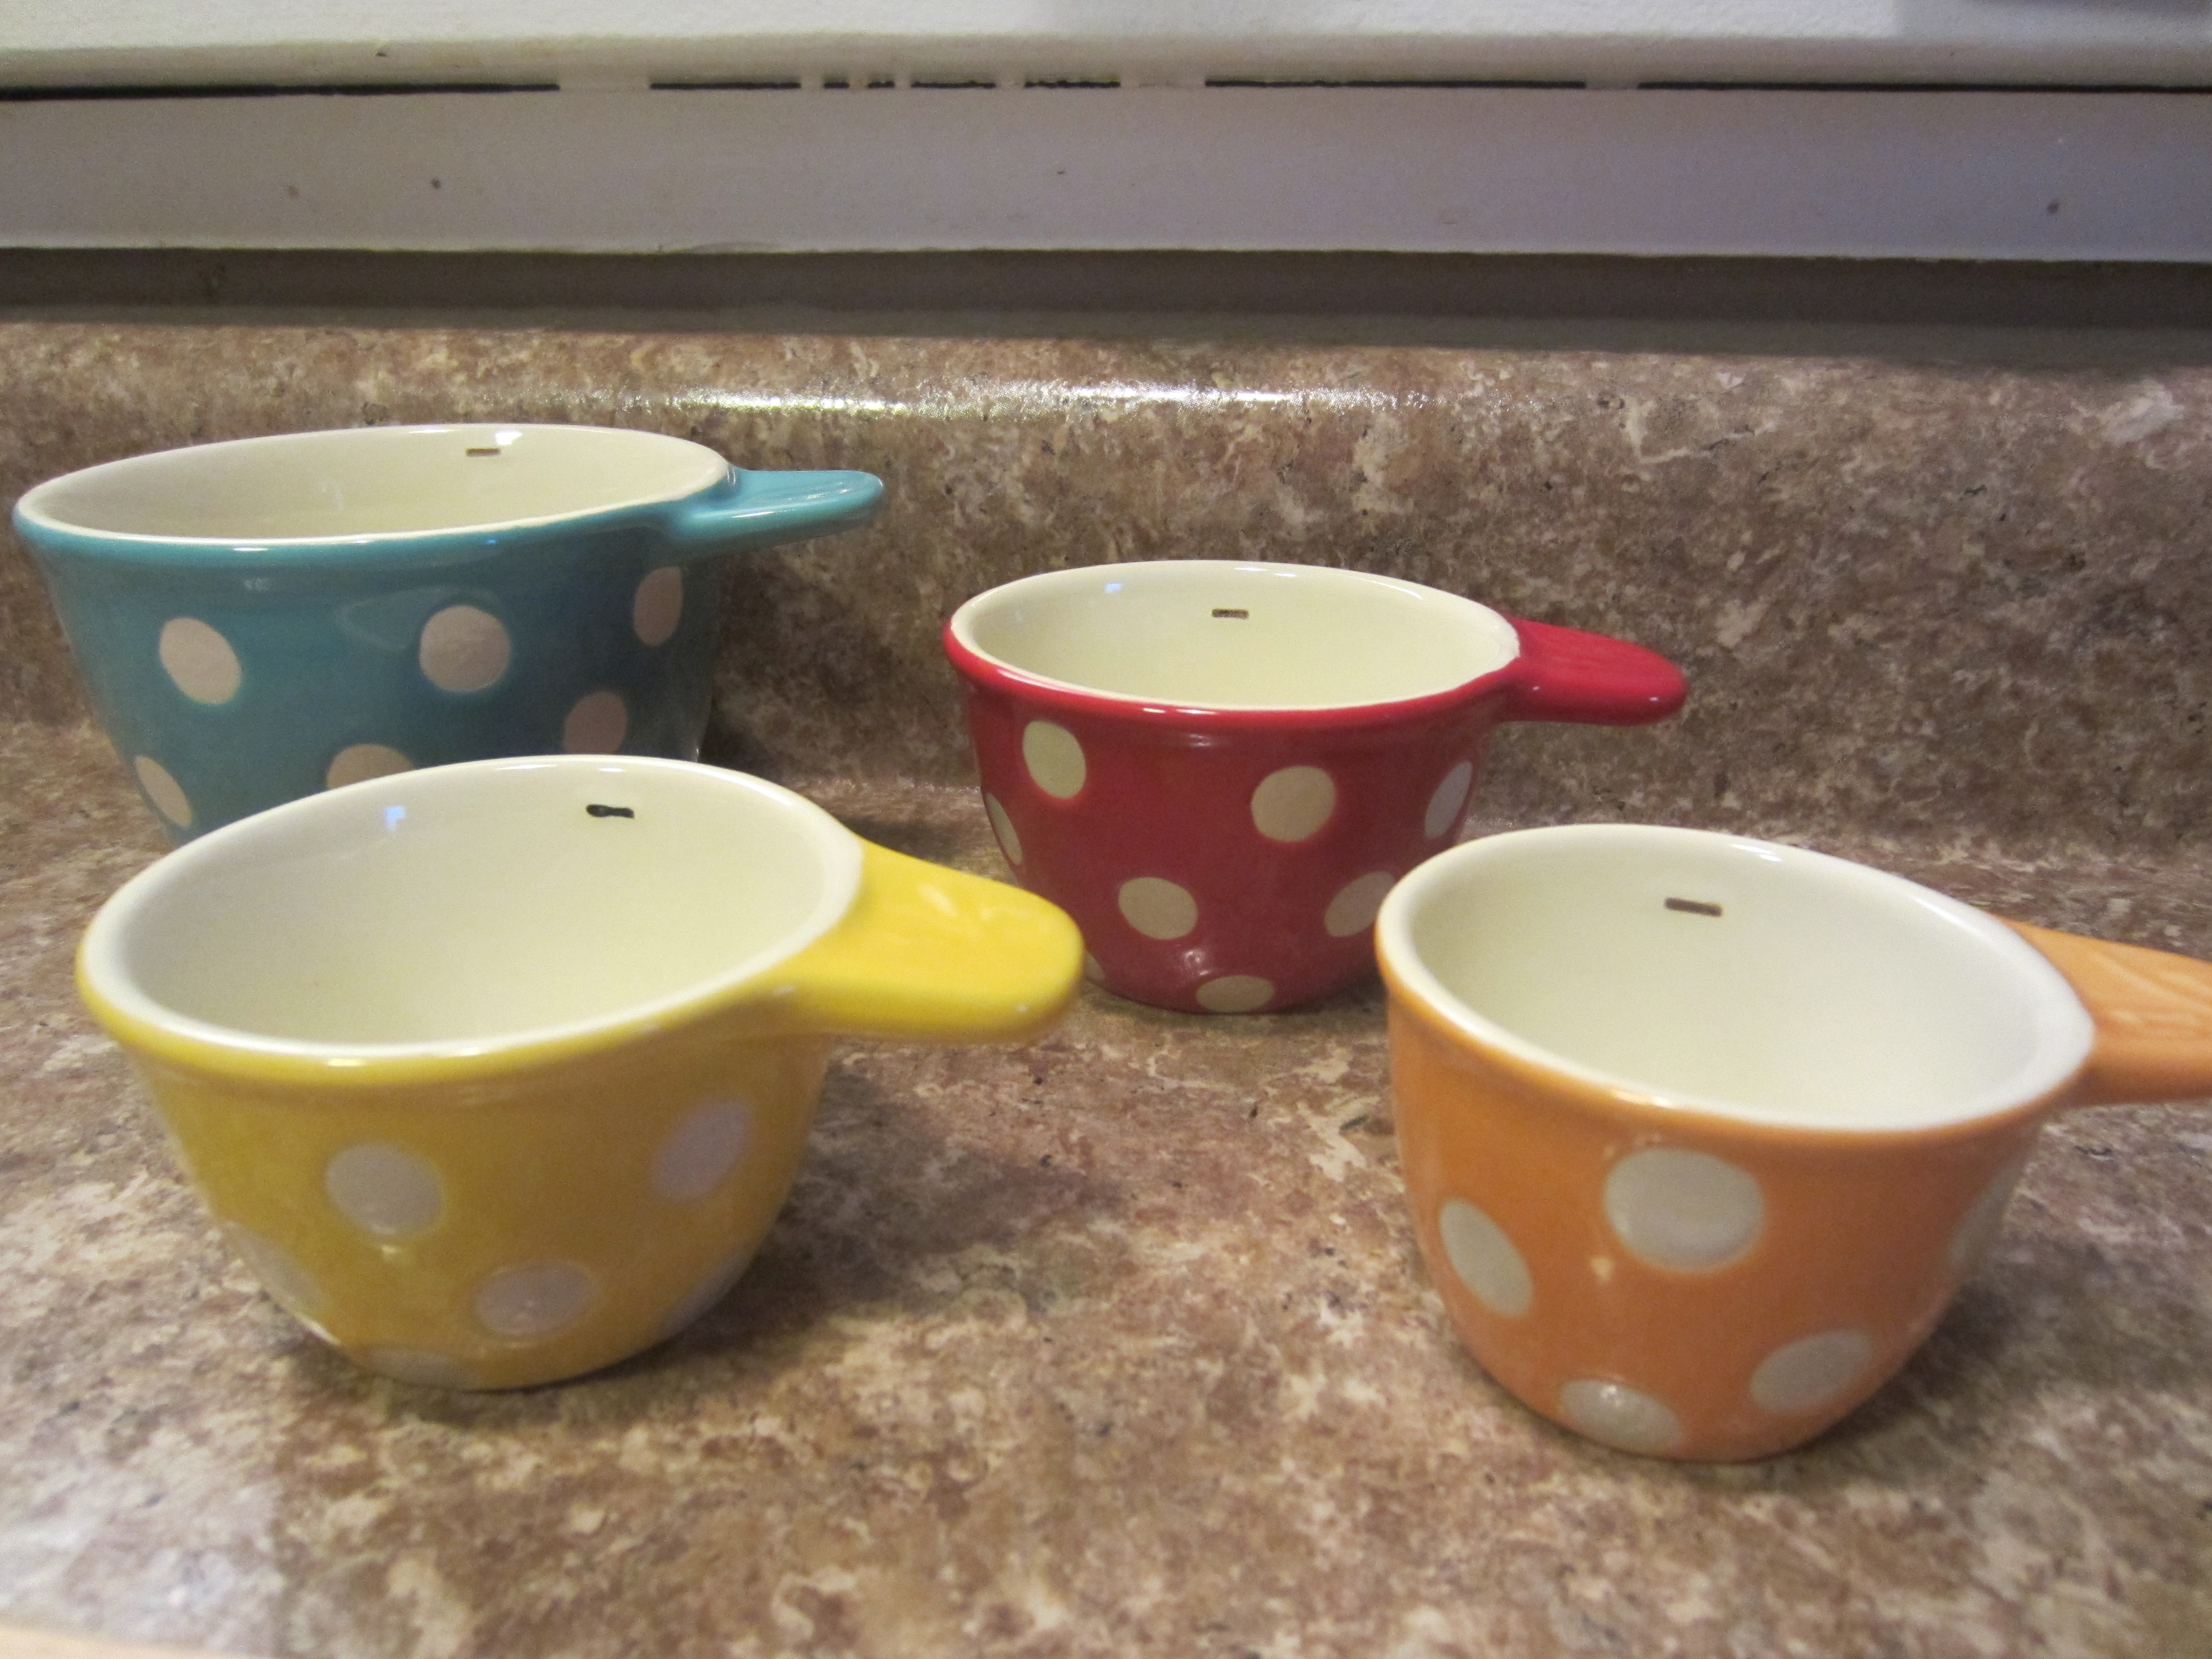 Presentation Meets Portion Control: Using Measuring Cups